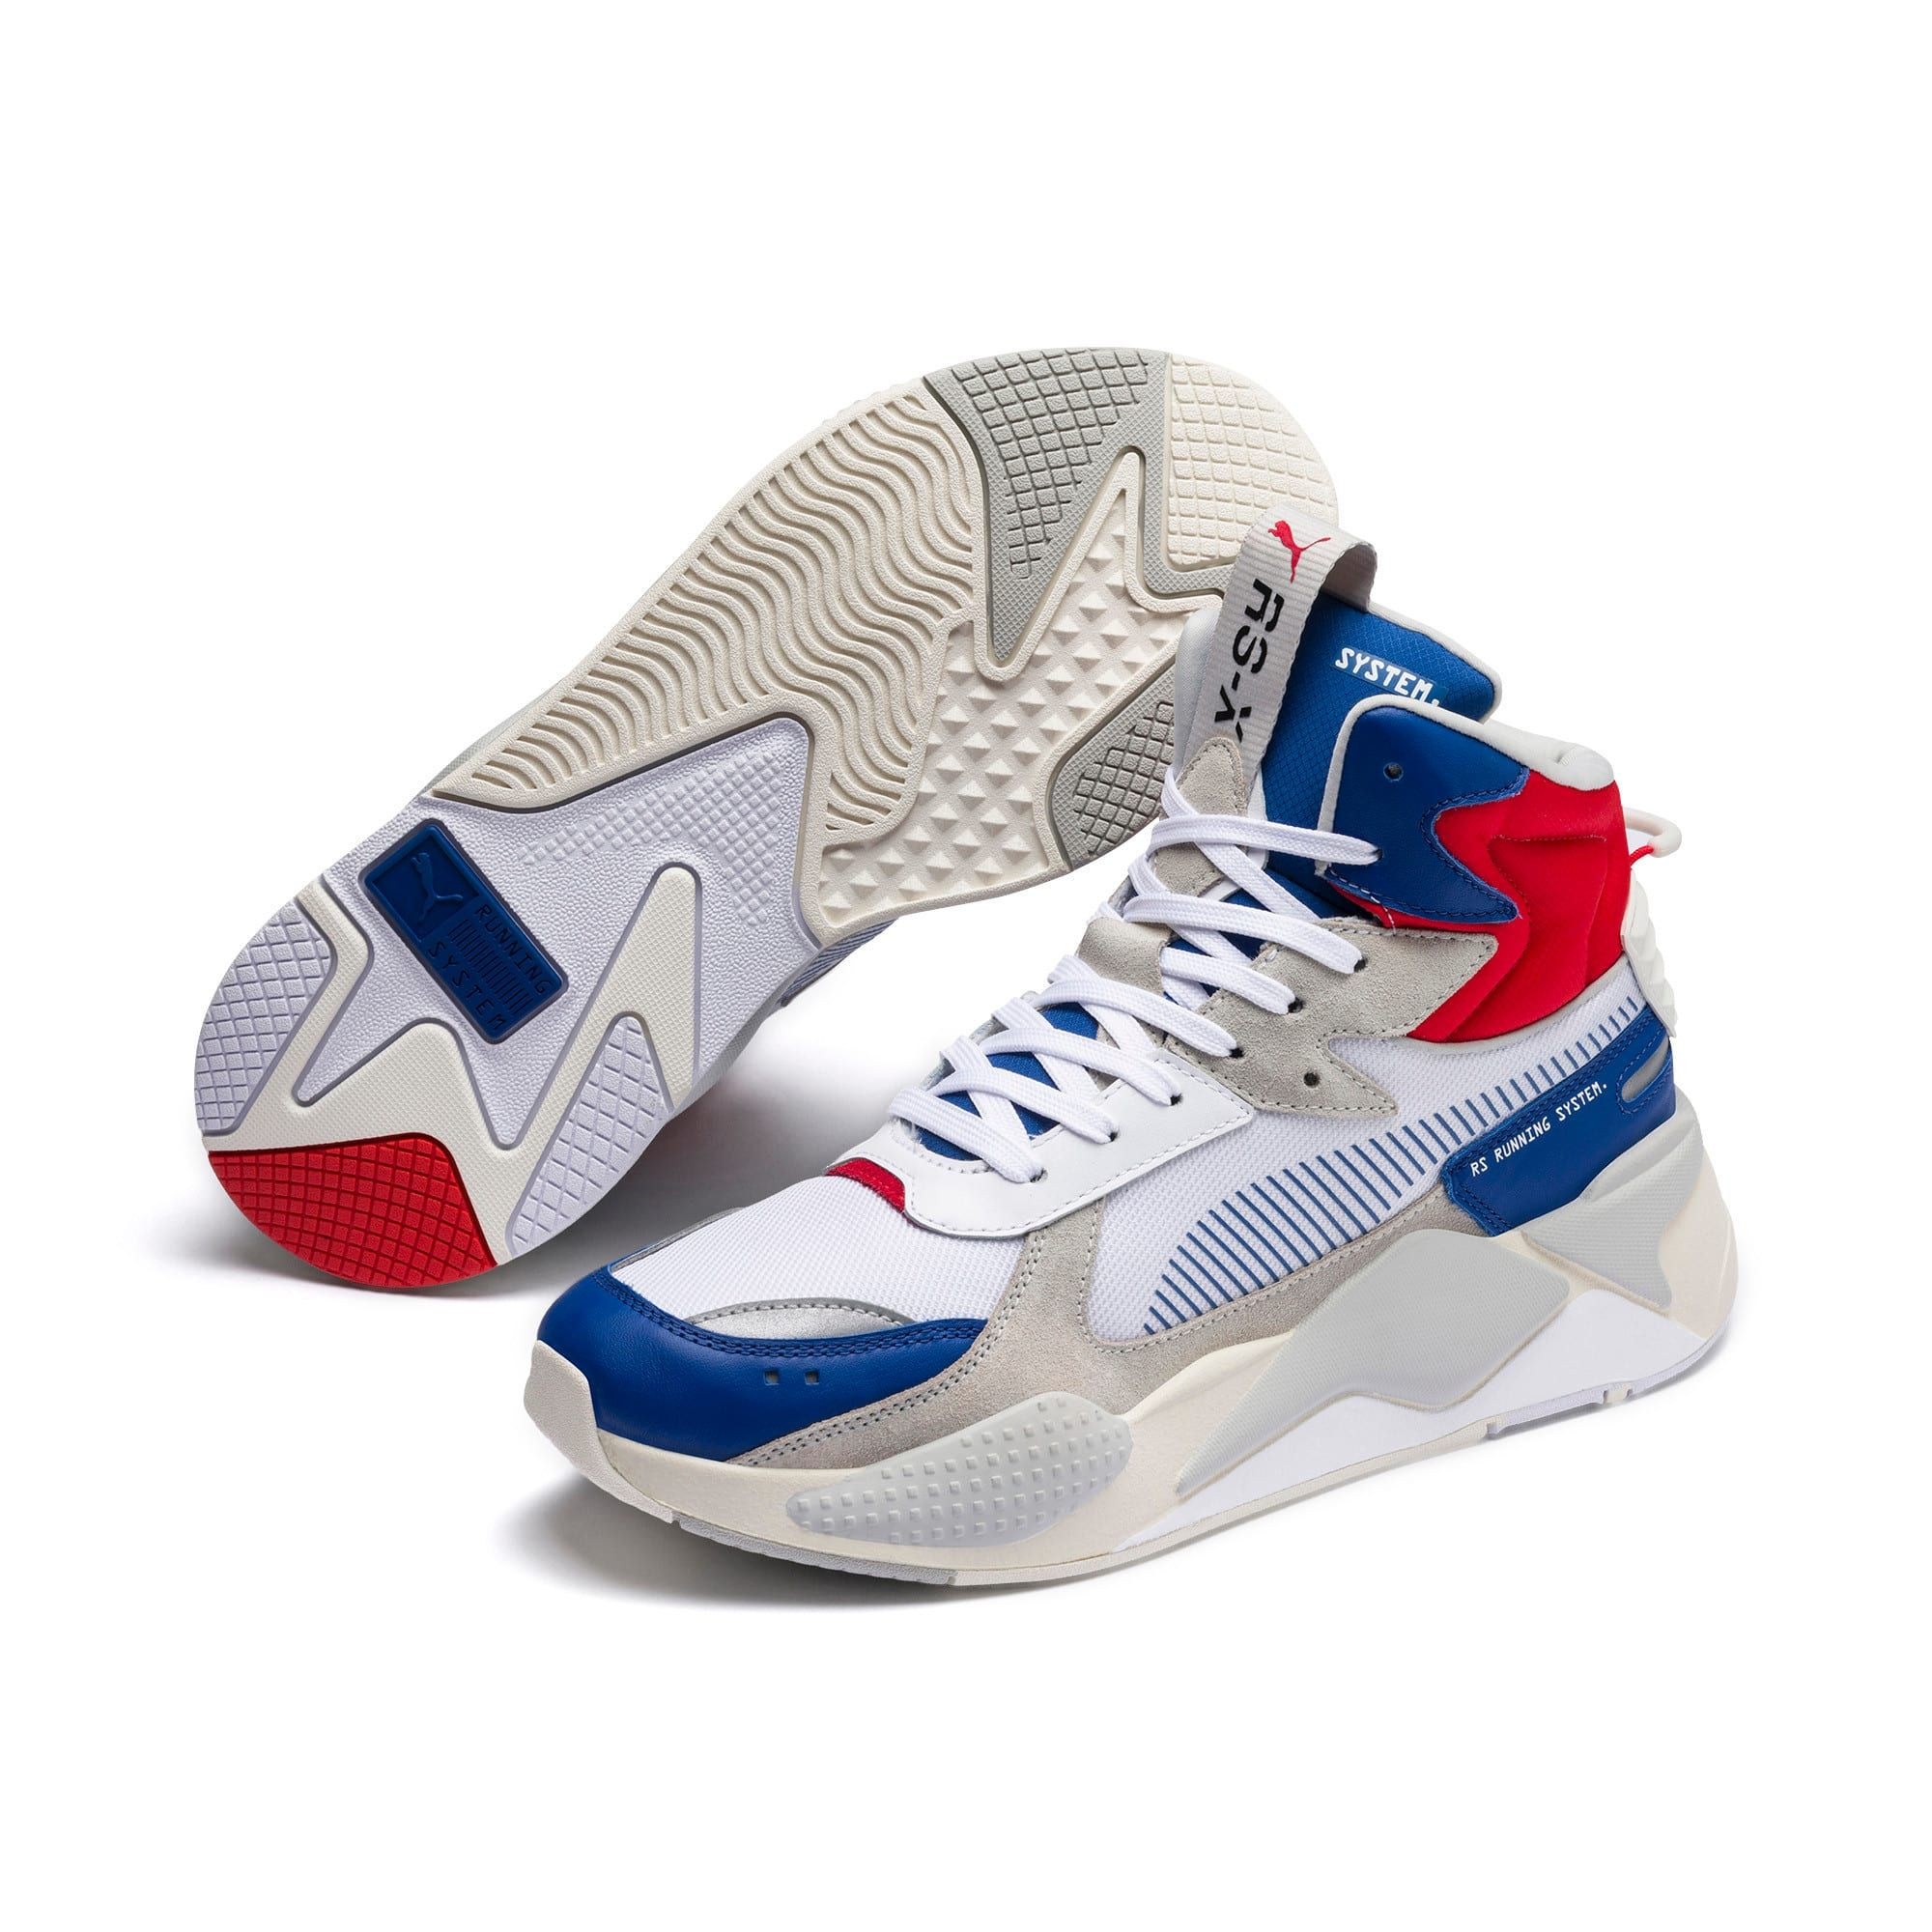 PUMA Rs X Midtop Utility Trainers in Galaxy BlueWhite size